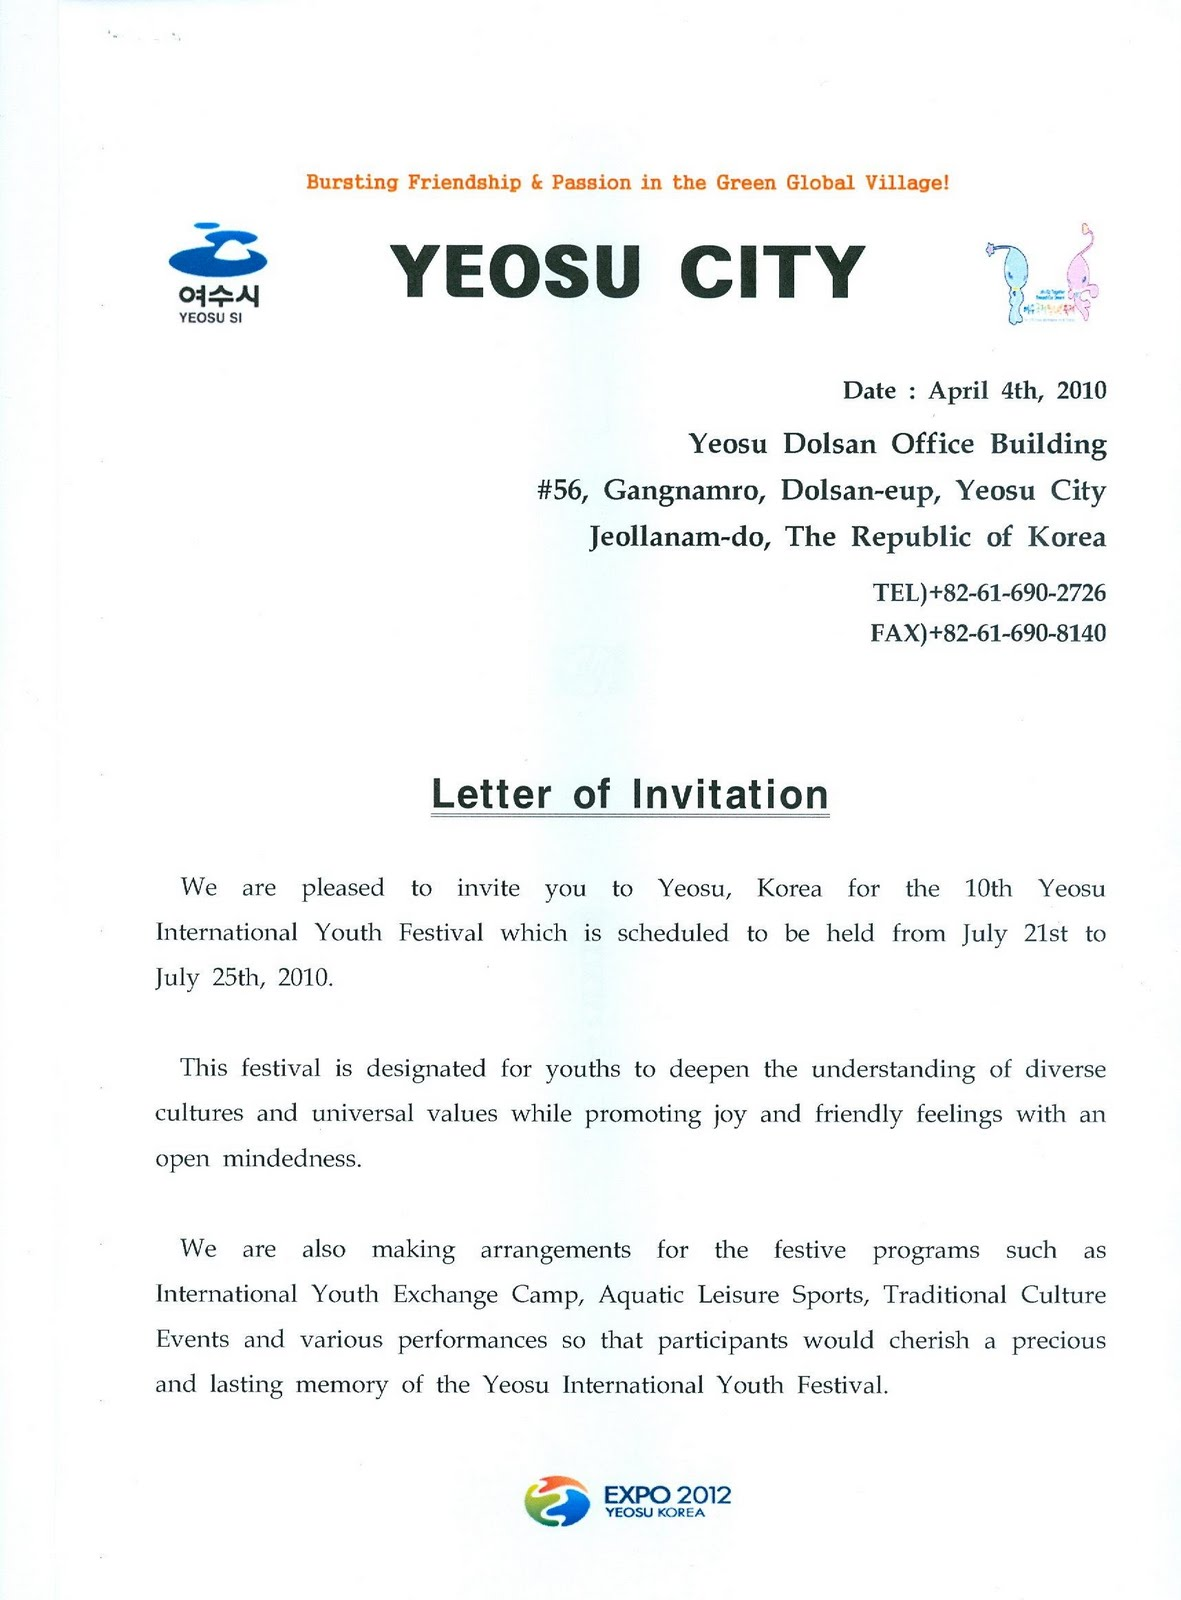 The 10th yeosu international youth festival letter from the mayor this is the letter of invitation from the mayor of yeosu if you need this invitation please feel free to print it off if you require the official stopboris Image collections